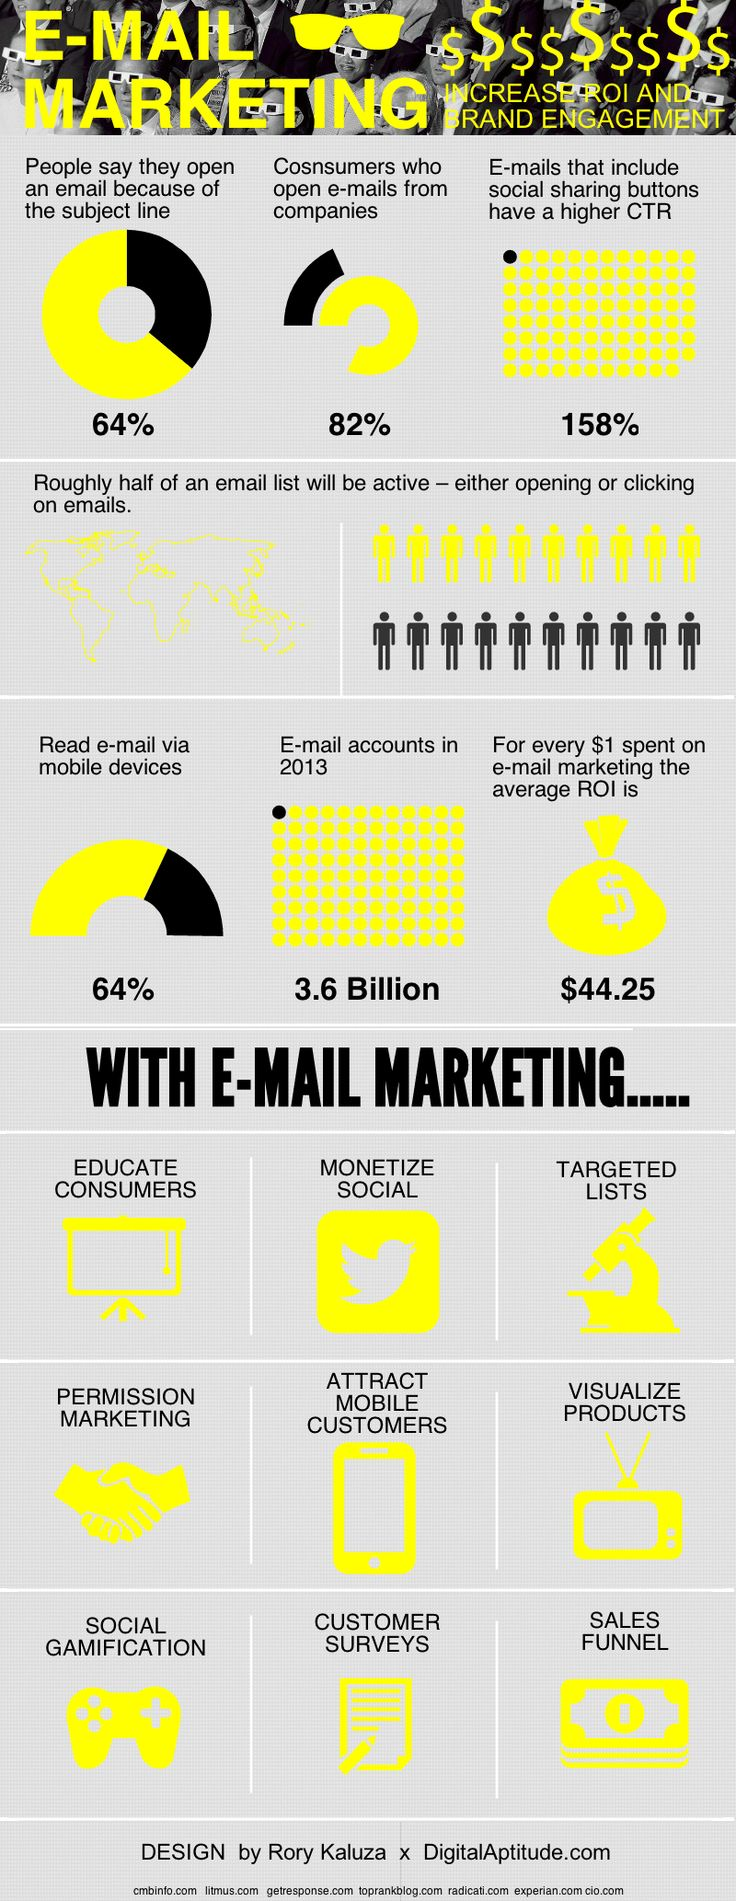 E-mail Marketing in 2013 [Infographic]  from Digital Aptitude: #emailmarketing #infographic